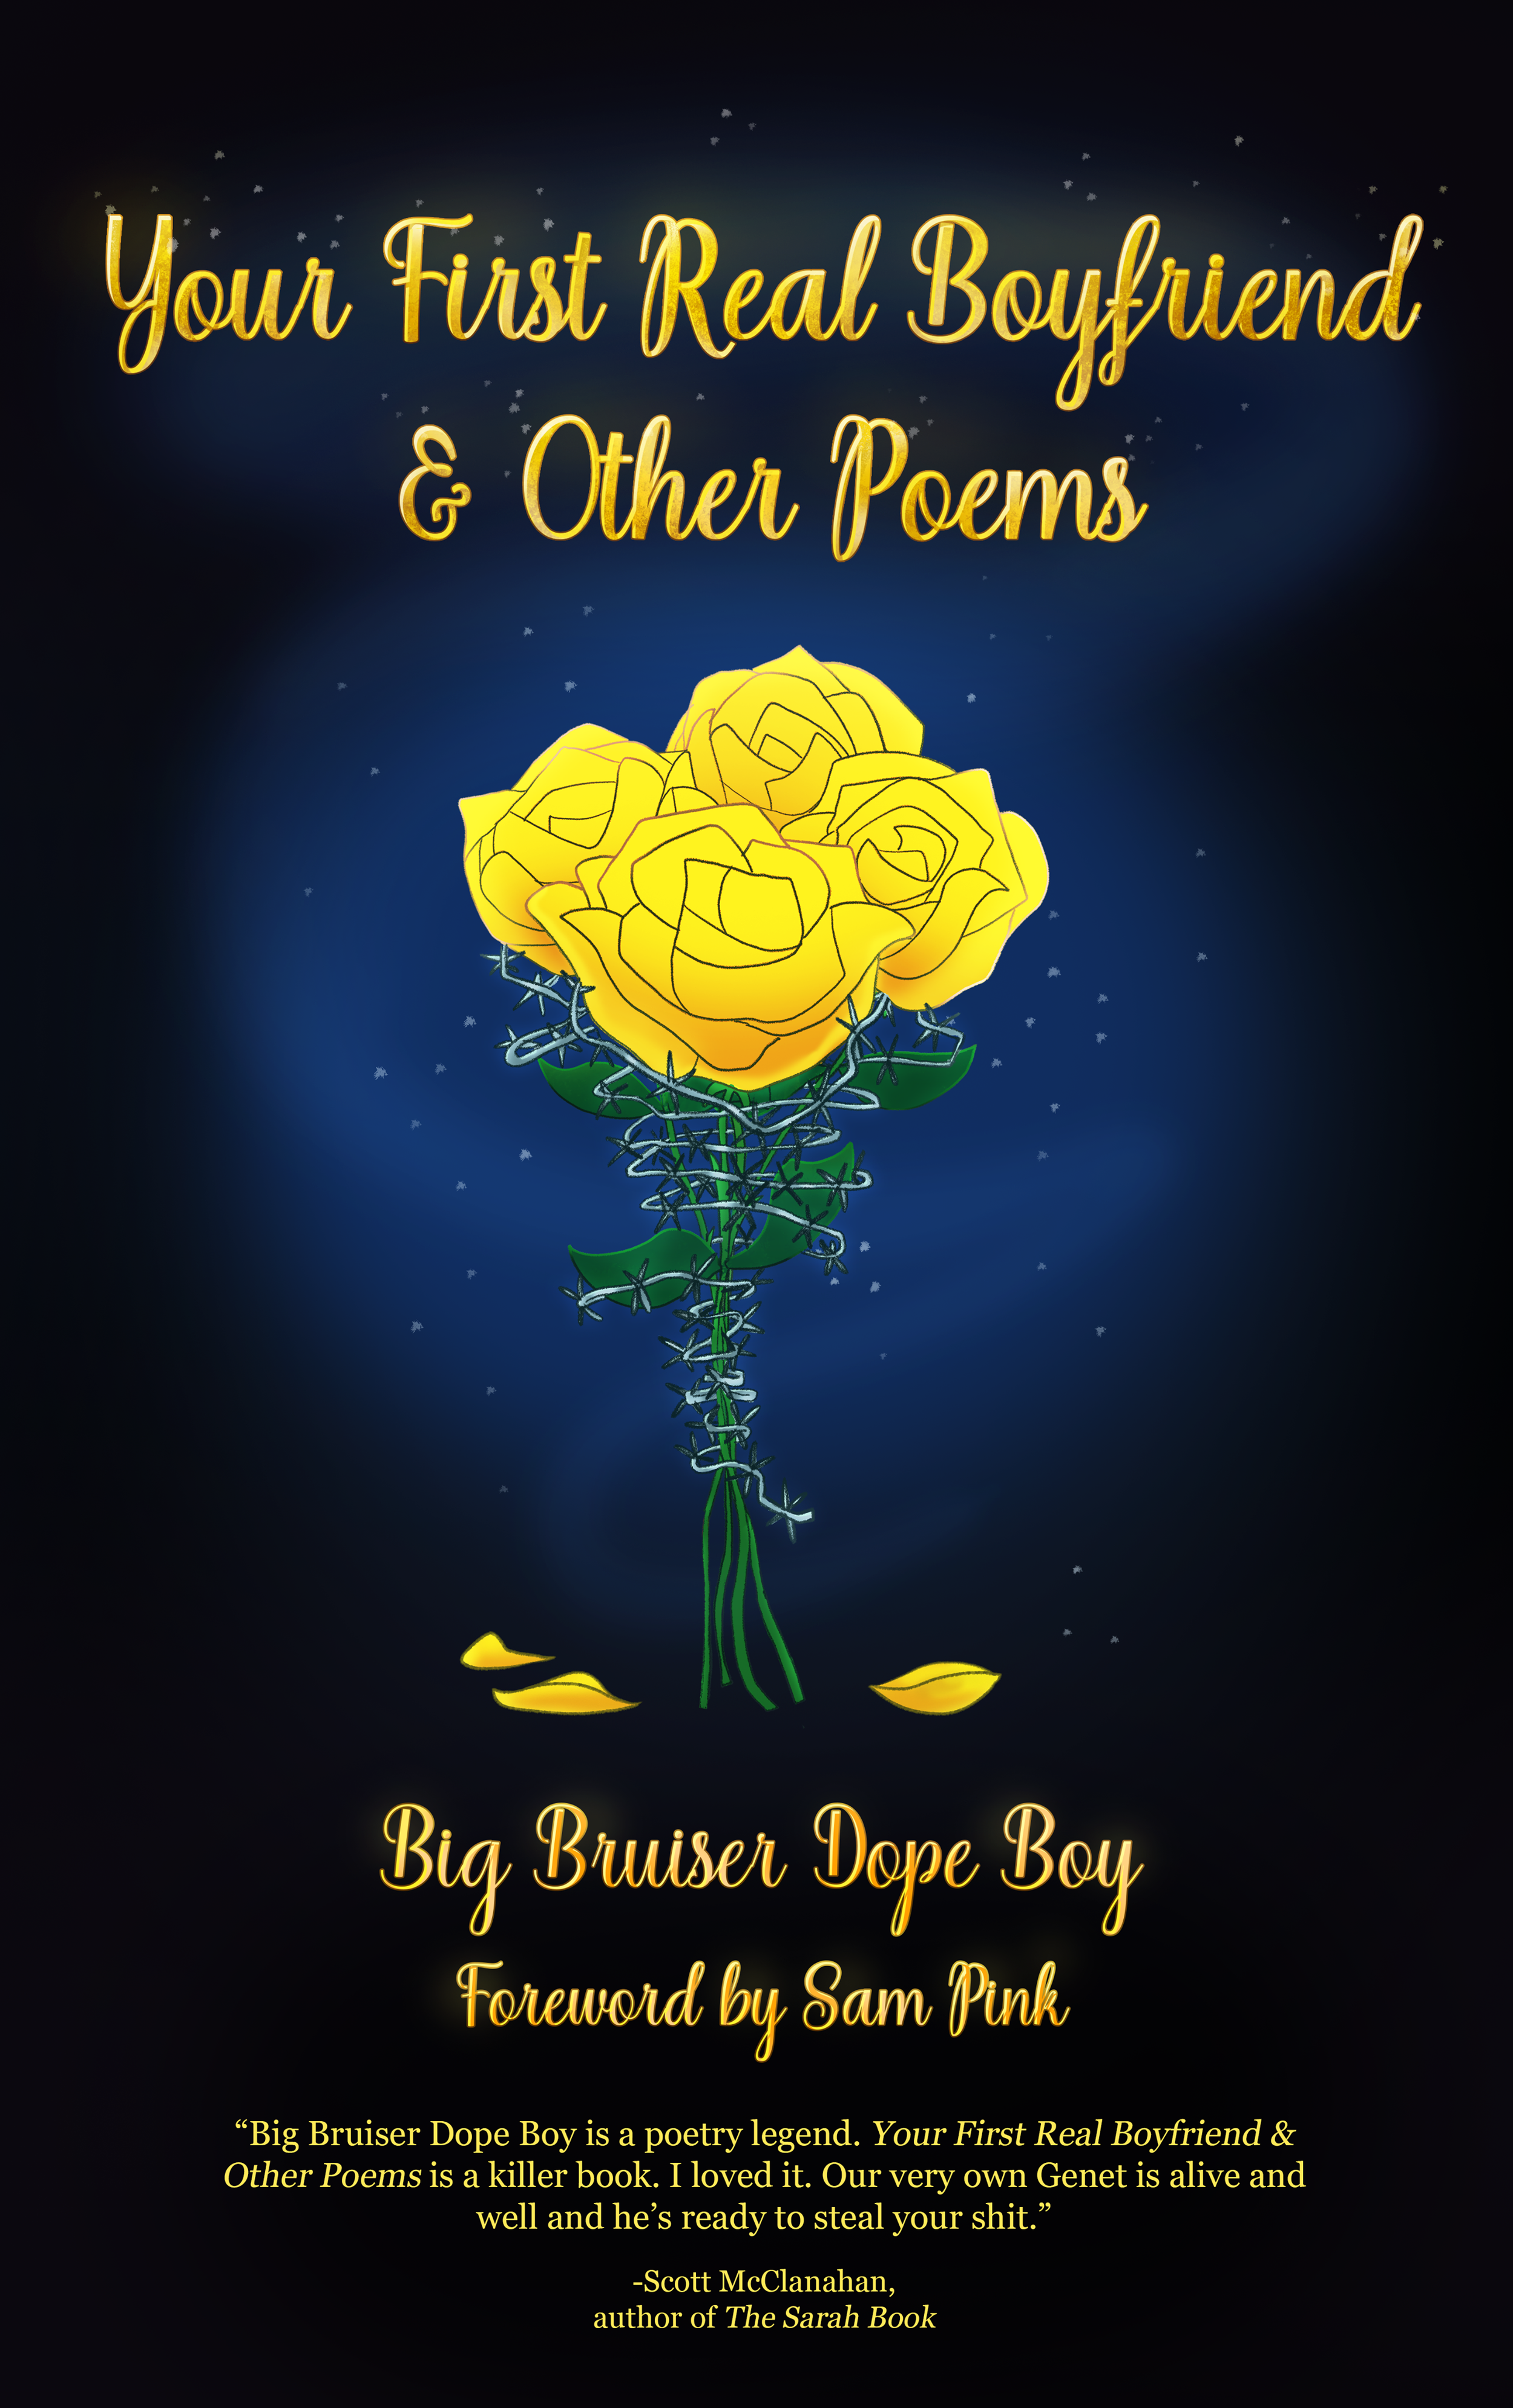 Big Bruiser Dope Boy - is a poetry legend. Your First Real Boyfriend & Other Poems is a killer book. I loved it. Our very own Genet is alive and well and he's ready to steal your shit.